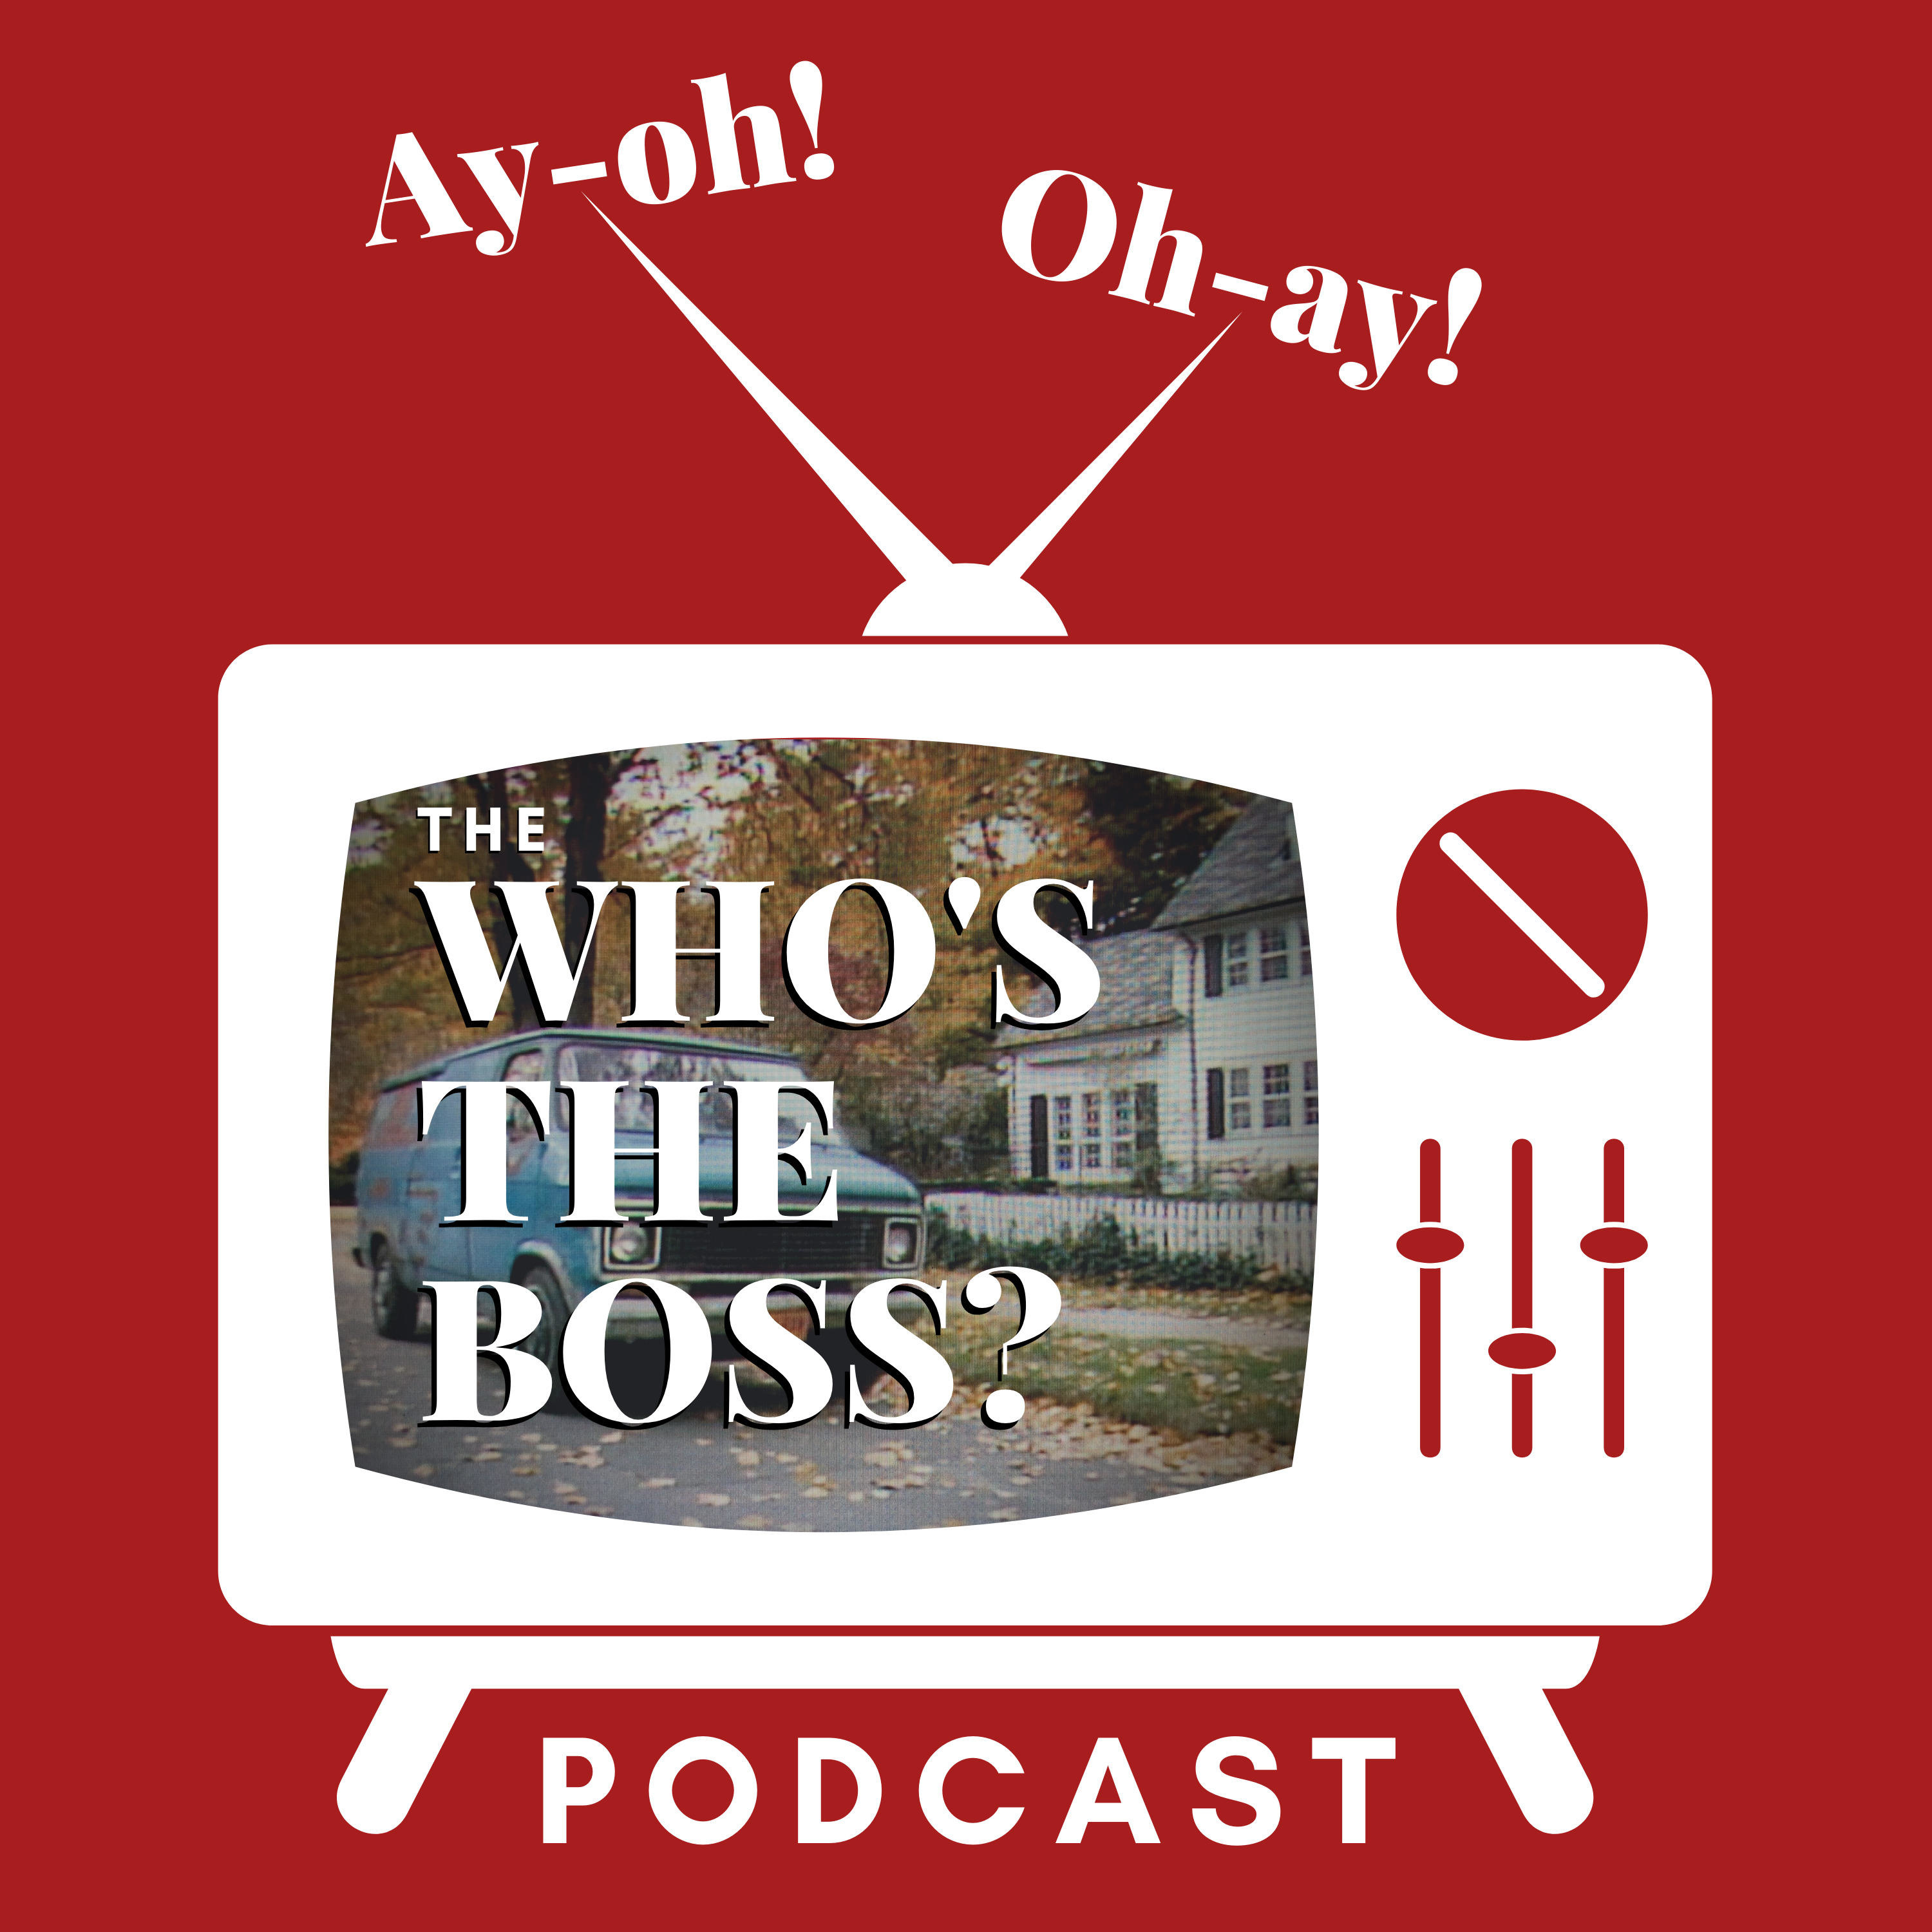 Ay-oh! Oh-ay! The Who's the Boss Podcast